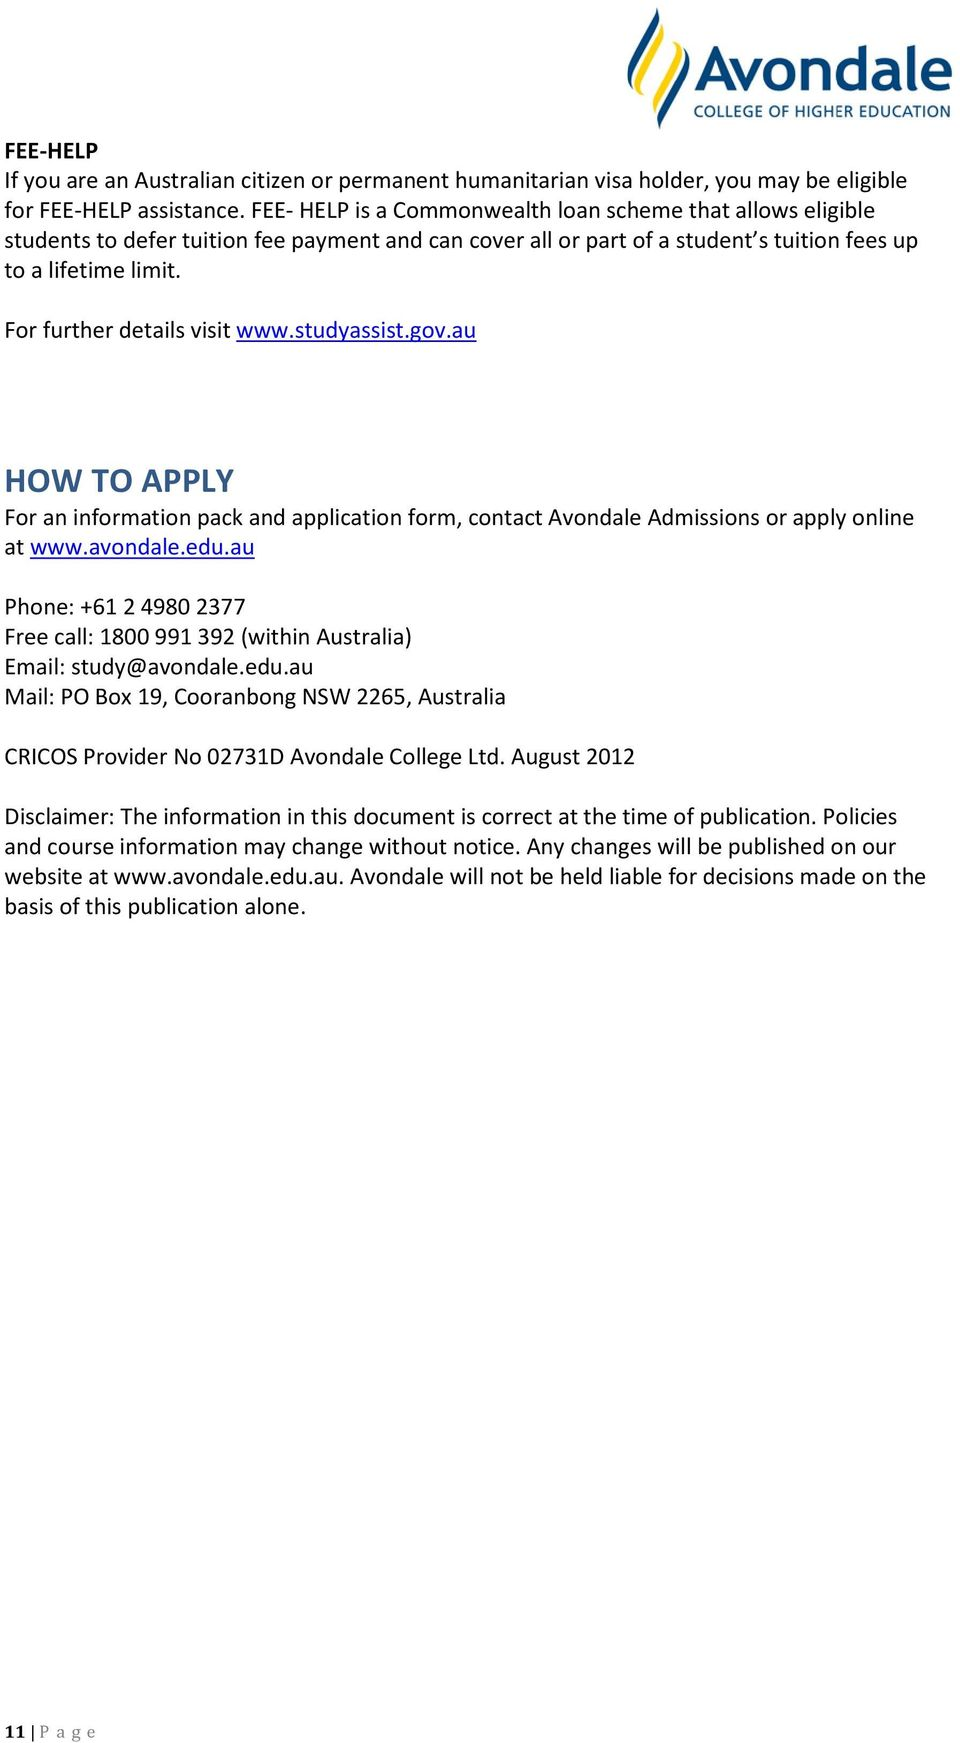 For further details visit www.studyassist.gov.au HOW TO APPLY For an information pack and application form, contact Avondale Admissions or apply online at www.avondale.edu.